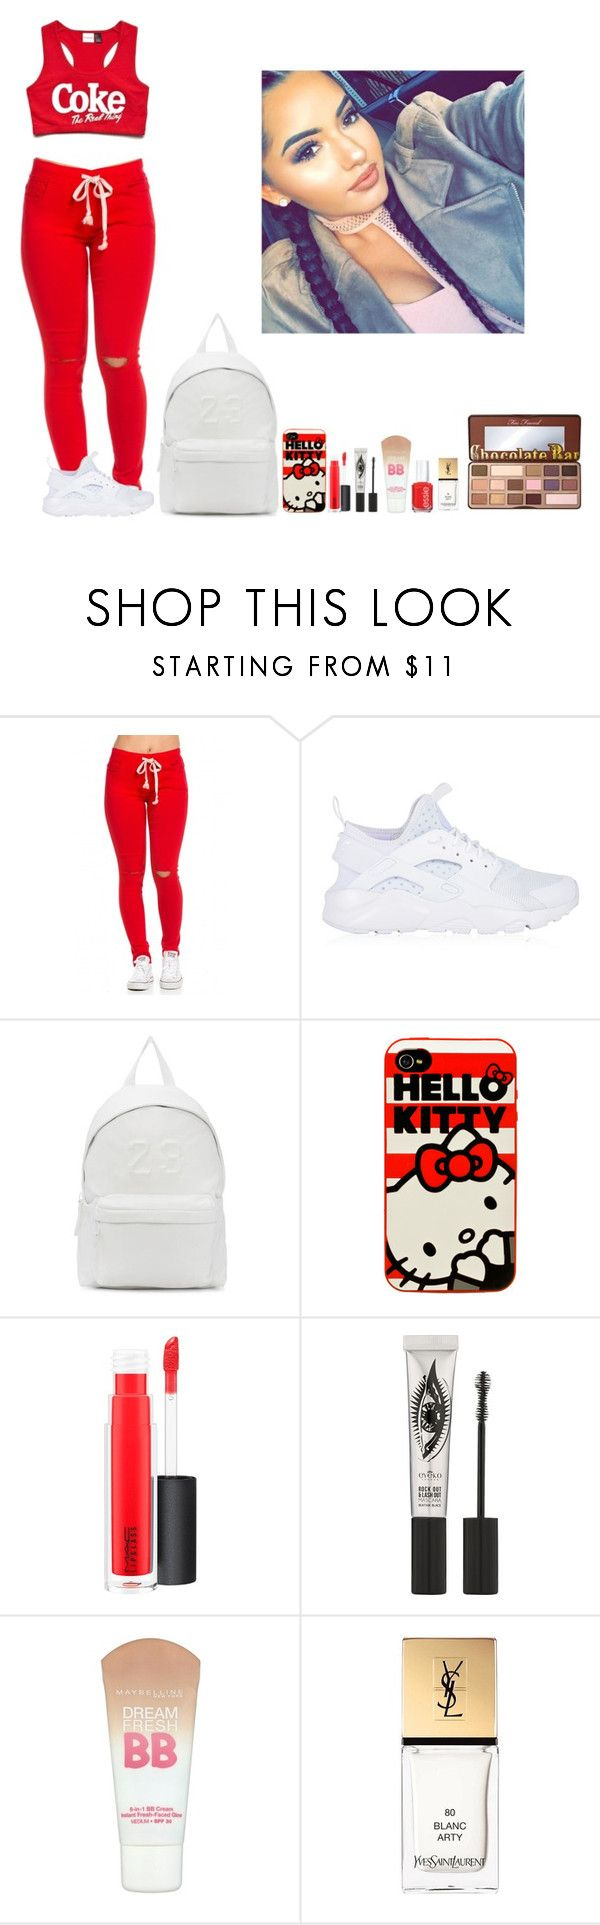 """""""-Glo Queen"""" by thegloup-reina on Polyvore featuring NIKE, Joshua's, Hello Kitty, MAC Cosmetics, Eyeko, Maybelline, Yves Saint Laurent and Too Faced Cosmetics"""